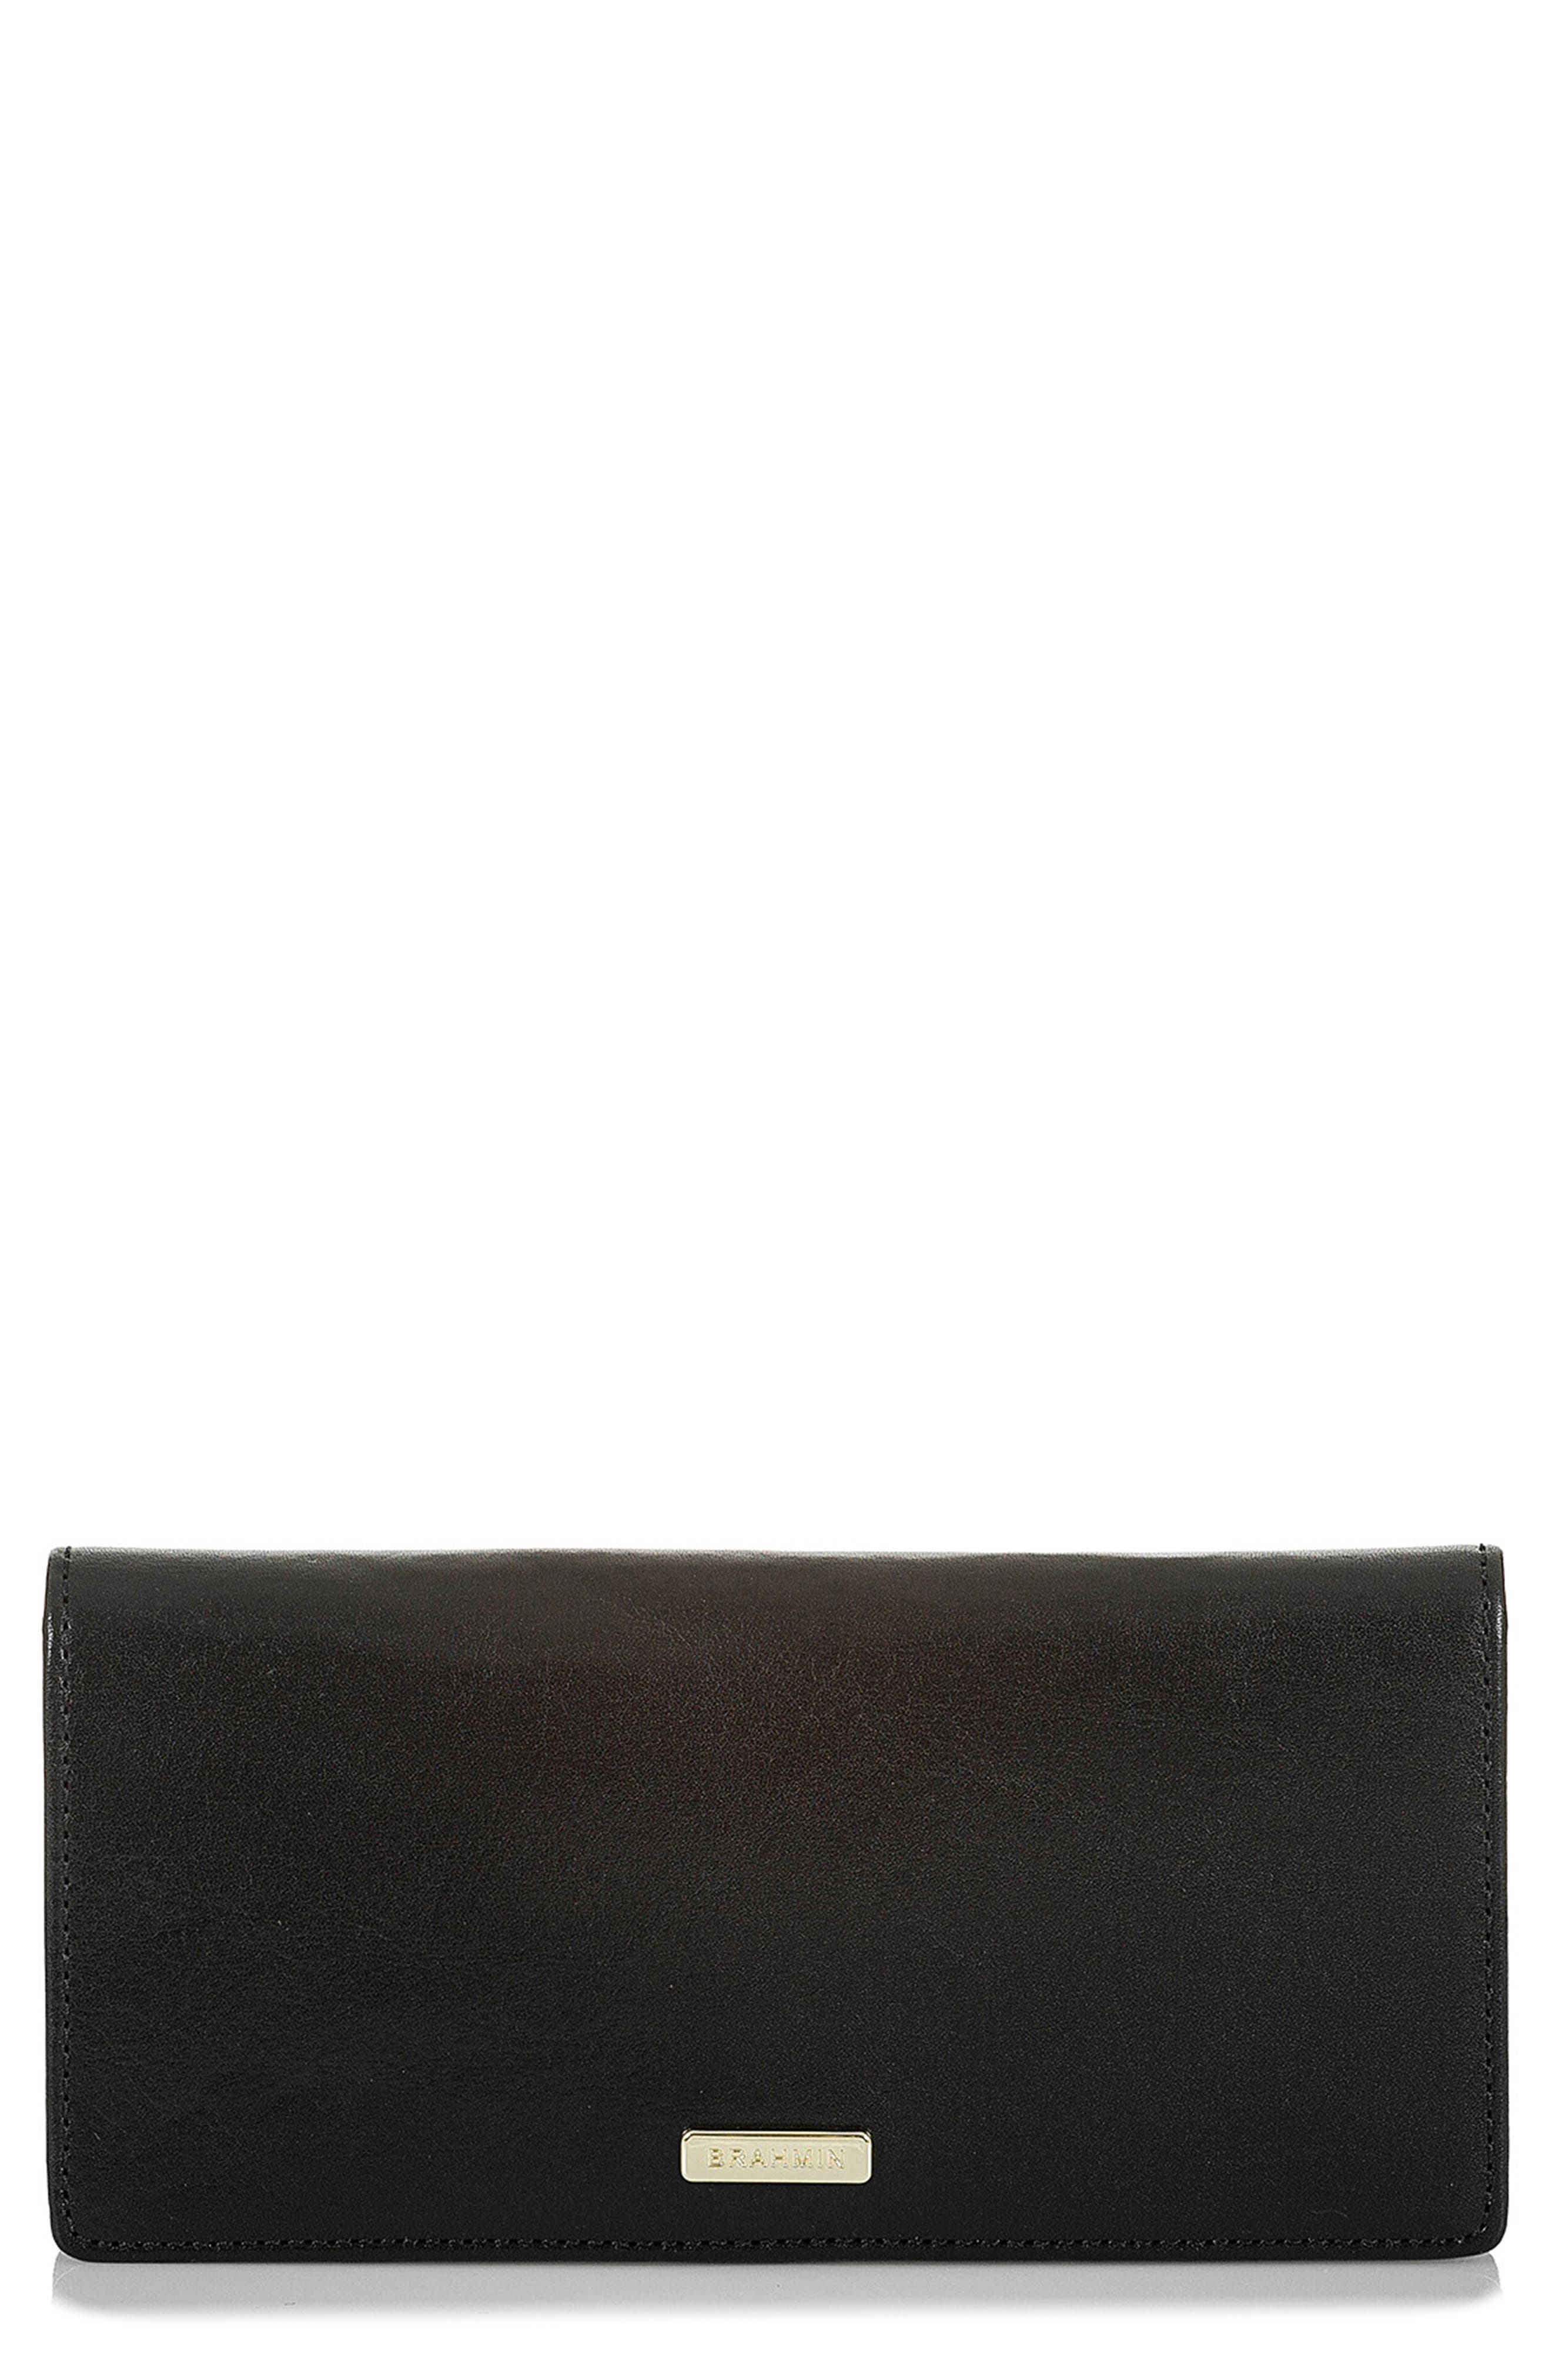 BRAHMIN Ady Leather Wallet, Main, color, 001